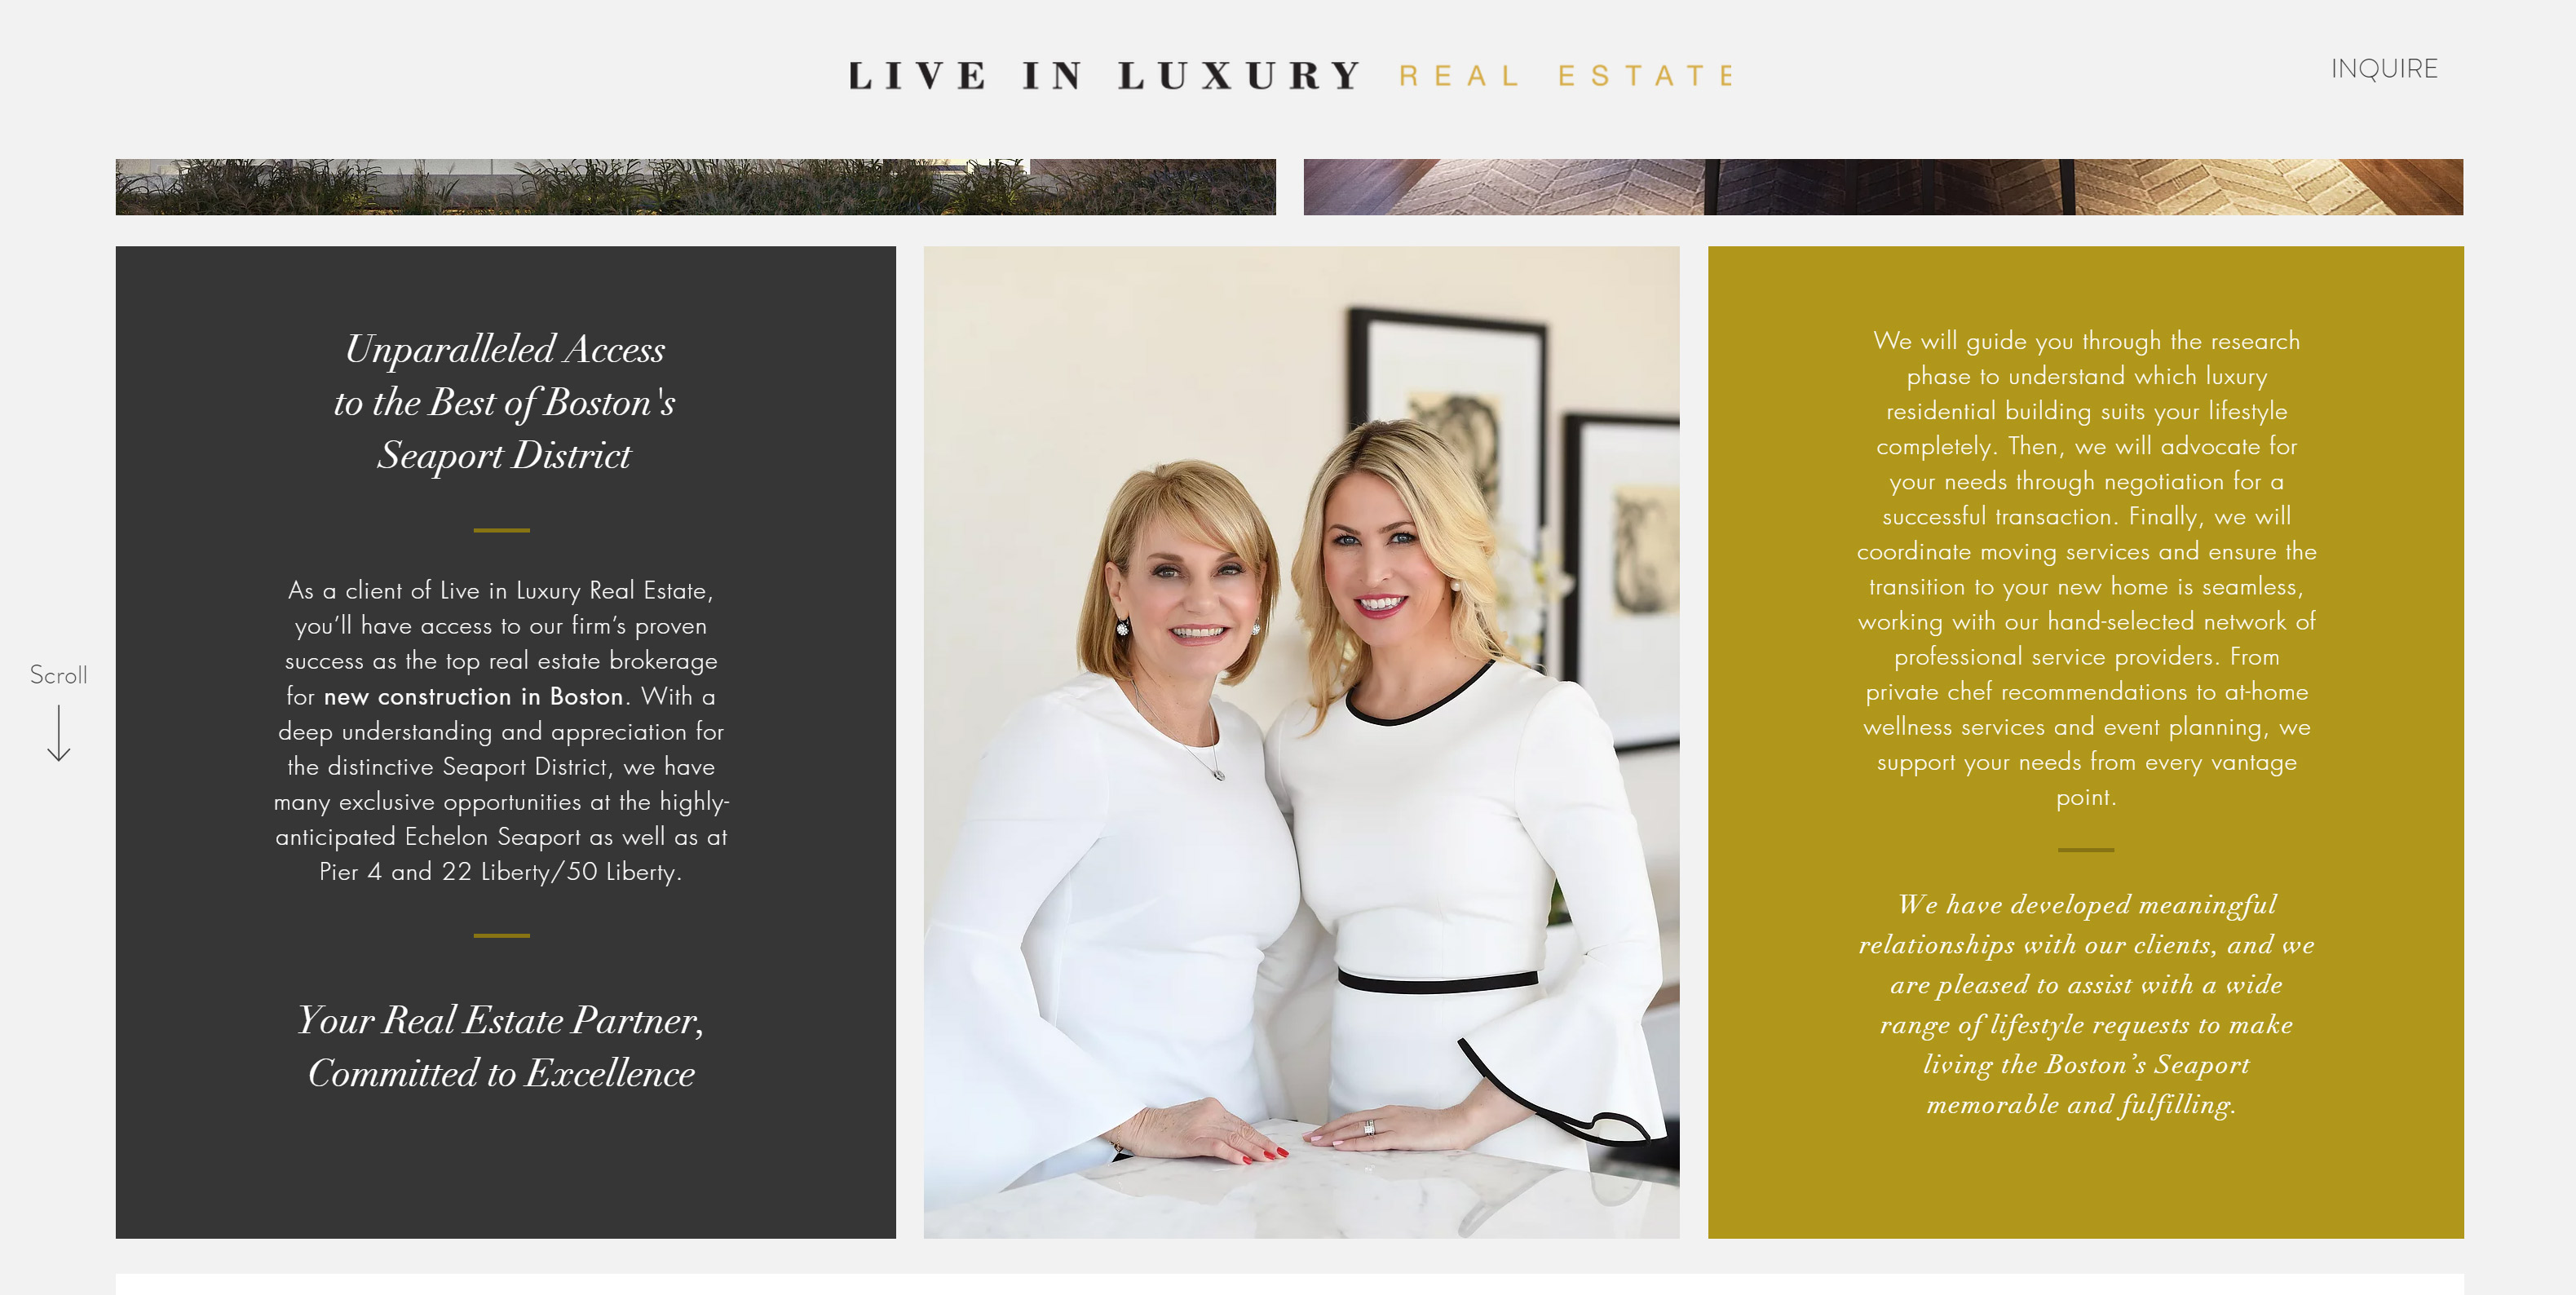 Sarah-Cas-Graphic-Design-Website-Design-Live-In-Luxury-Real-Estate-Echelon-Seaport-Boston-3